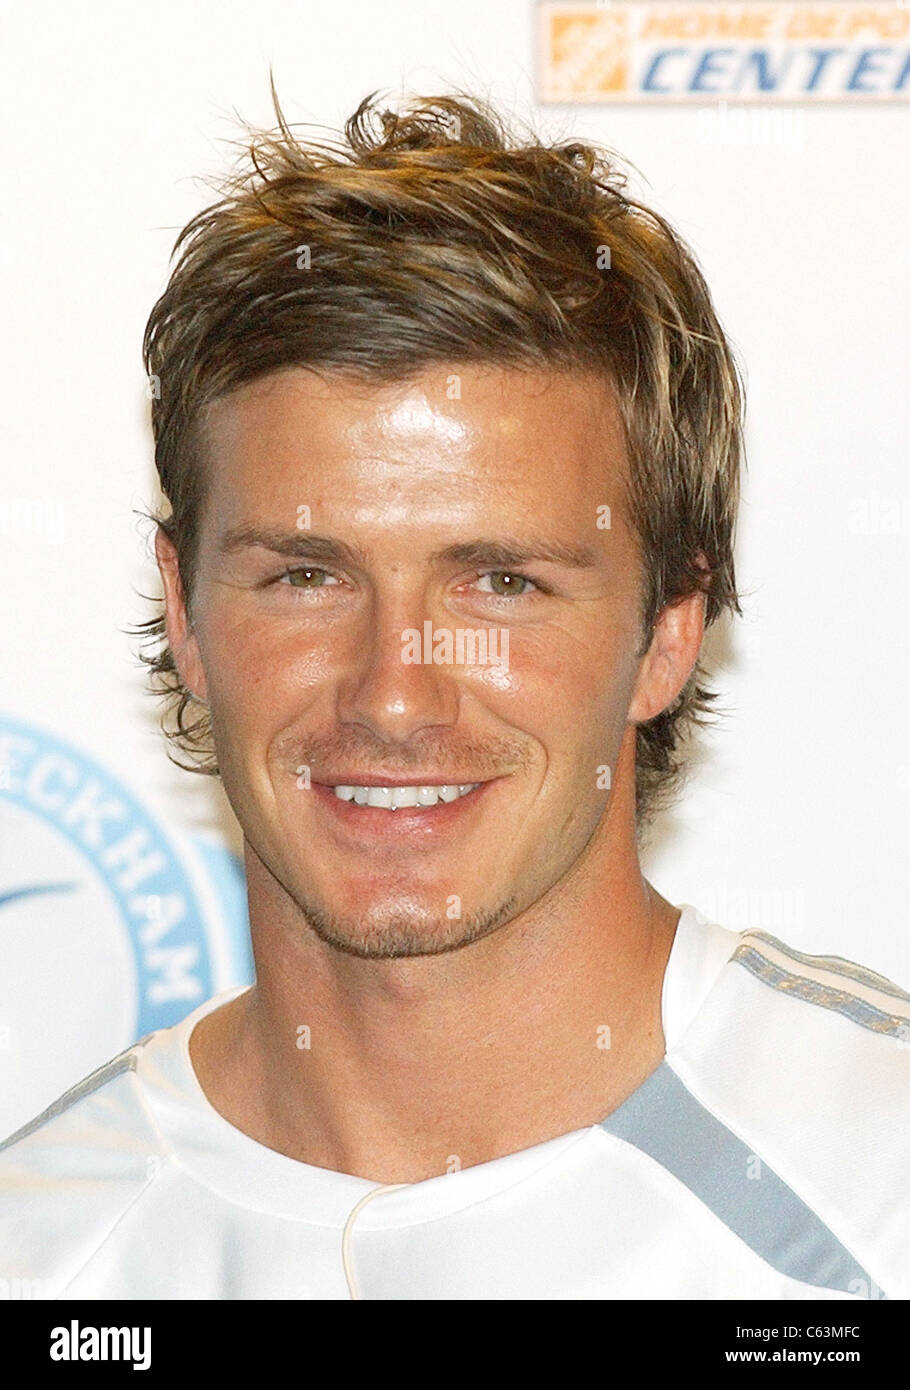 David Beckham at the press conference for David Beckham Launches Home Depot Soccer Academy, The Home Depot Center - Stock Image